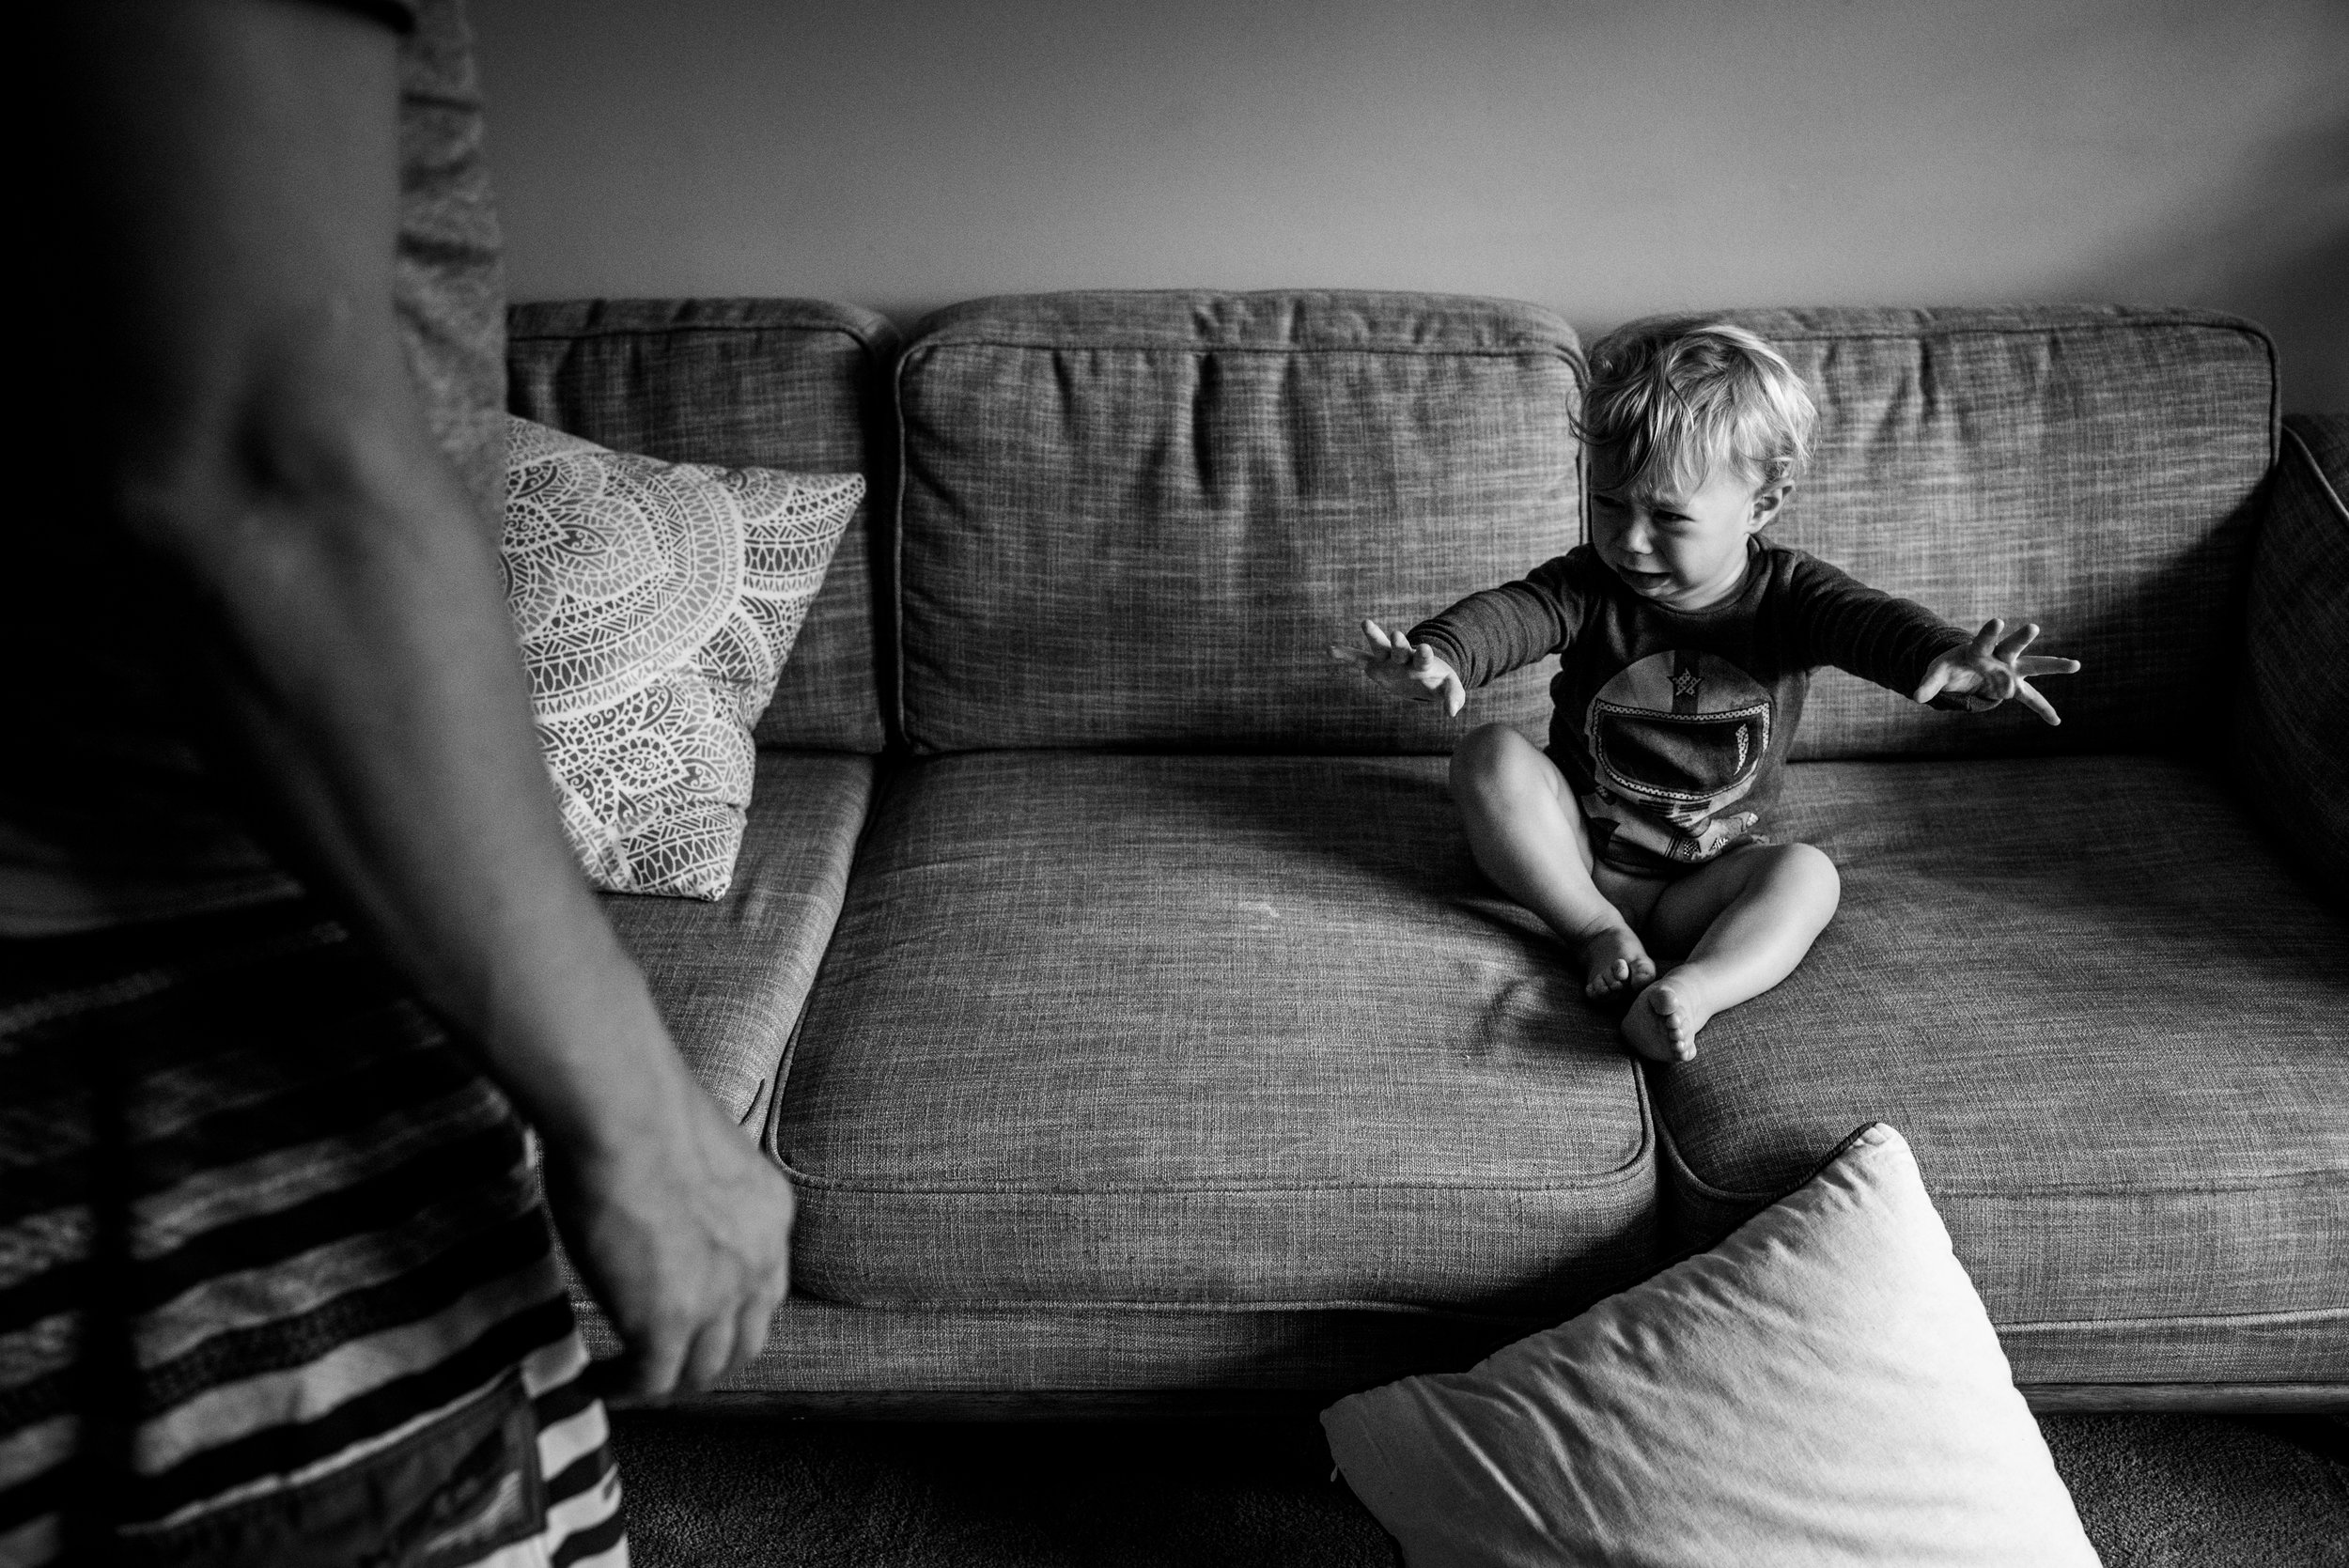 Toddler boy sitting on the couch and unhappy about getting dressed.